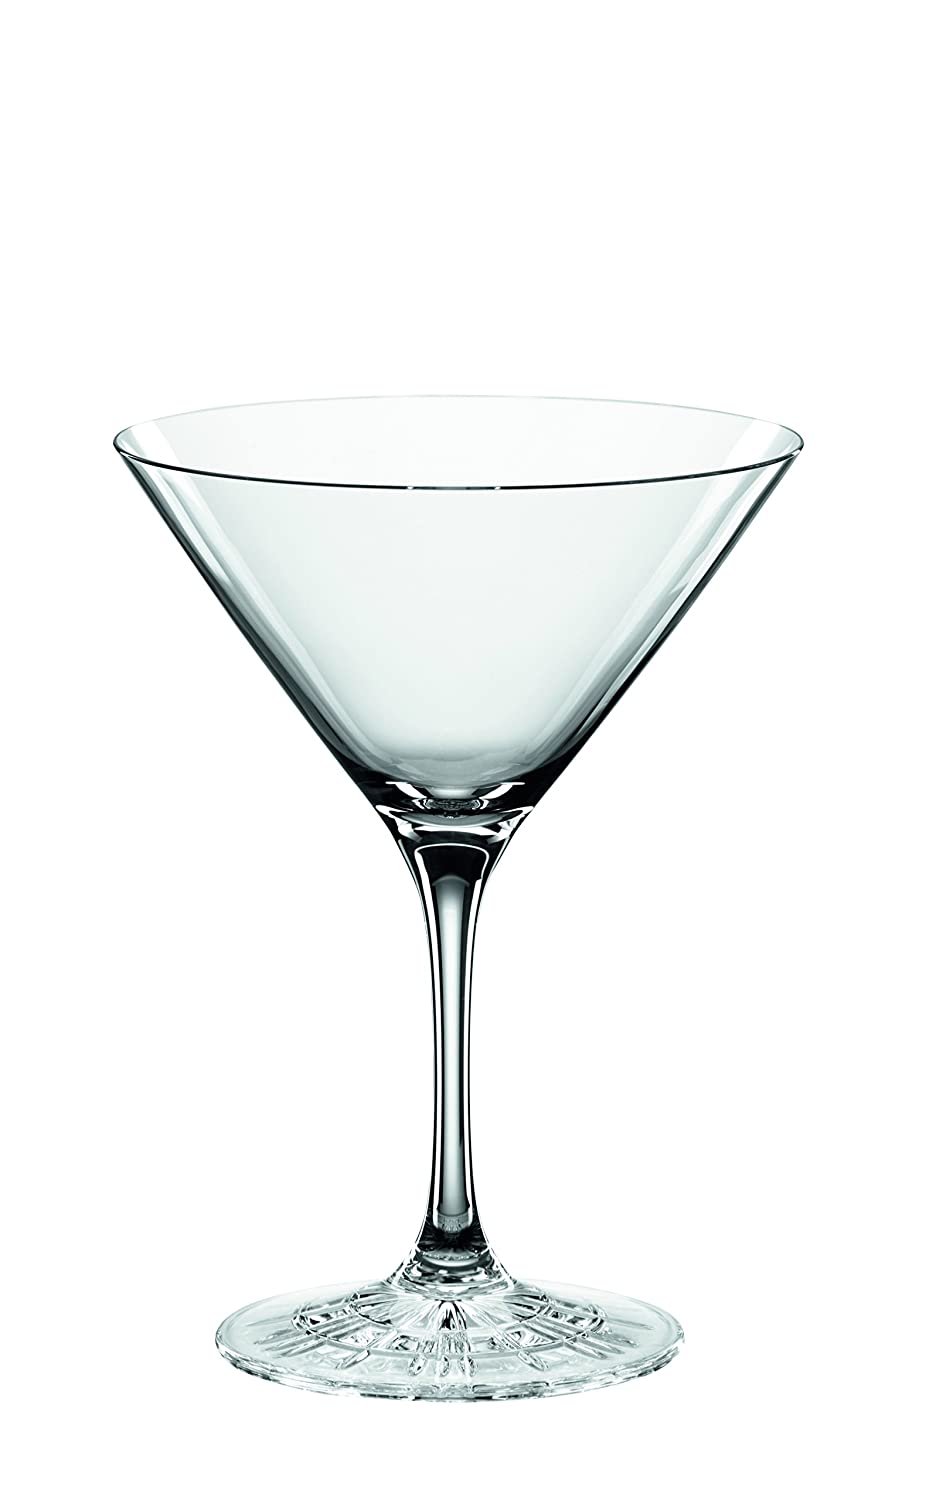 Spiegelau Perfect Serve Collection Cocktail Glass, Set of 4(4500175) True Brands